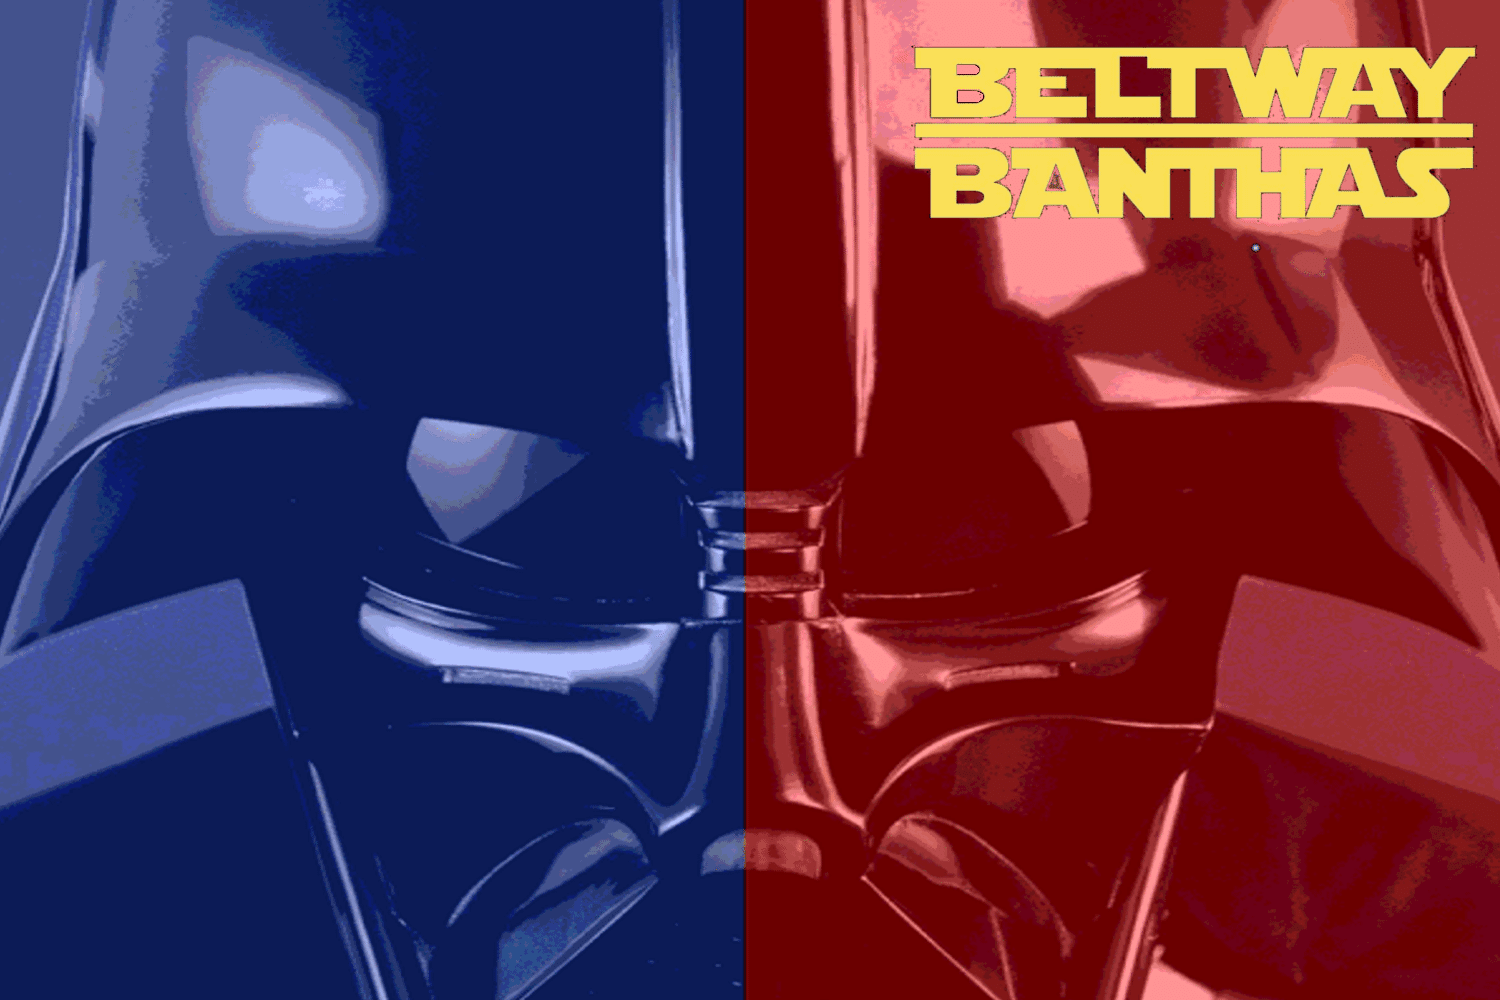 Beltway Banthas #14: Sounding Like a Seperatist